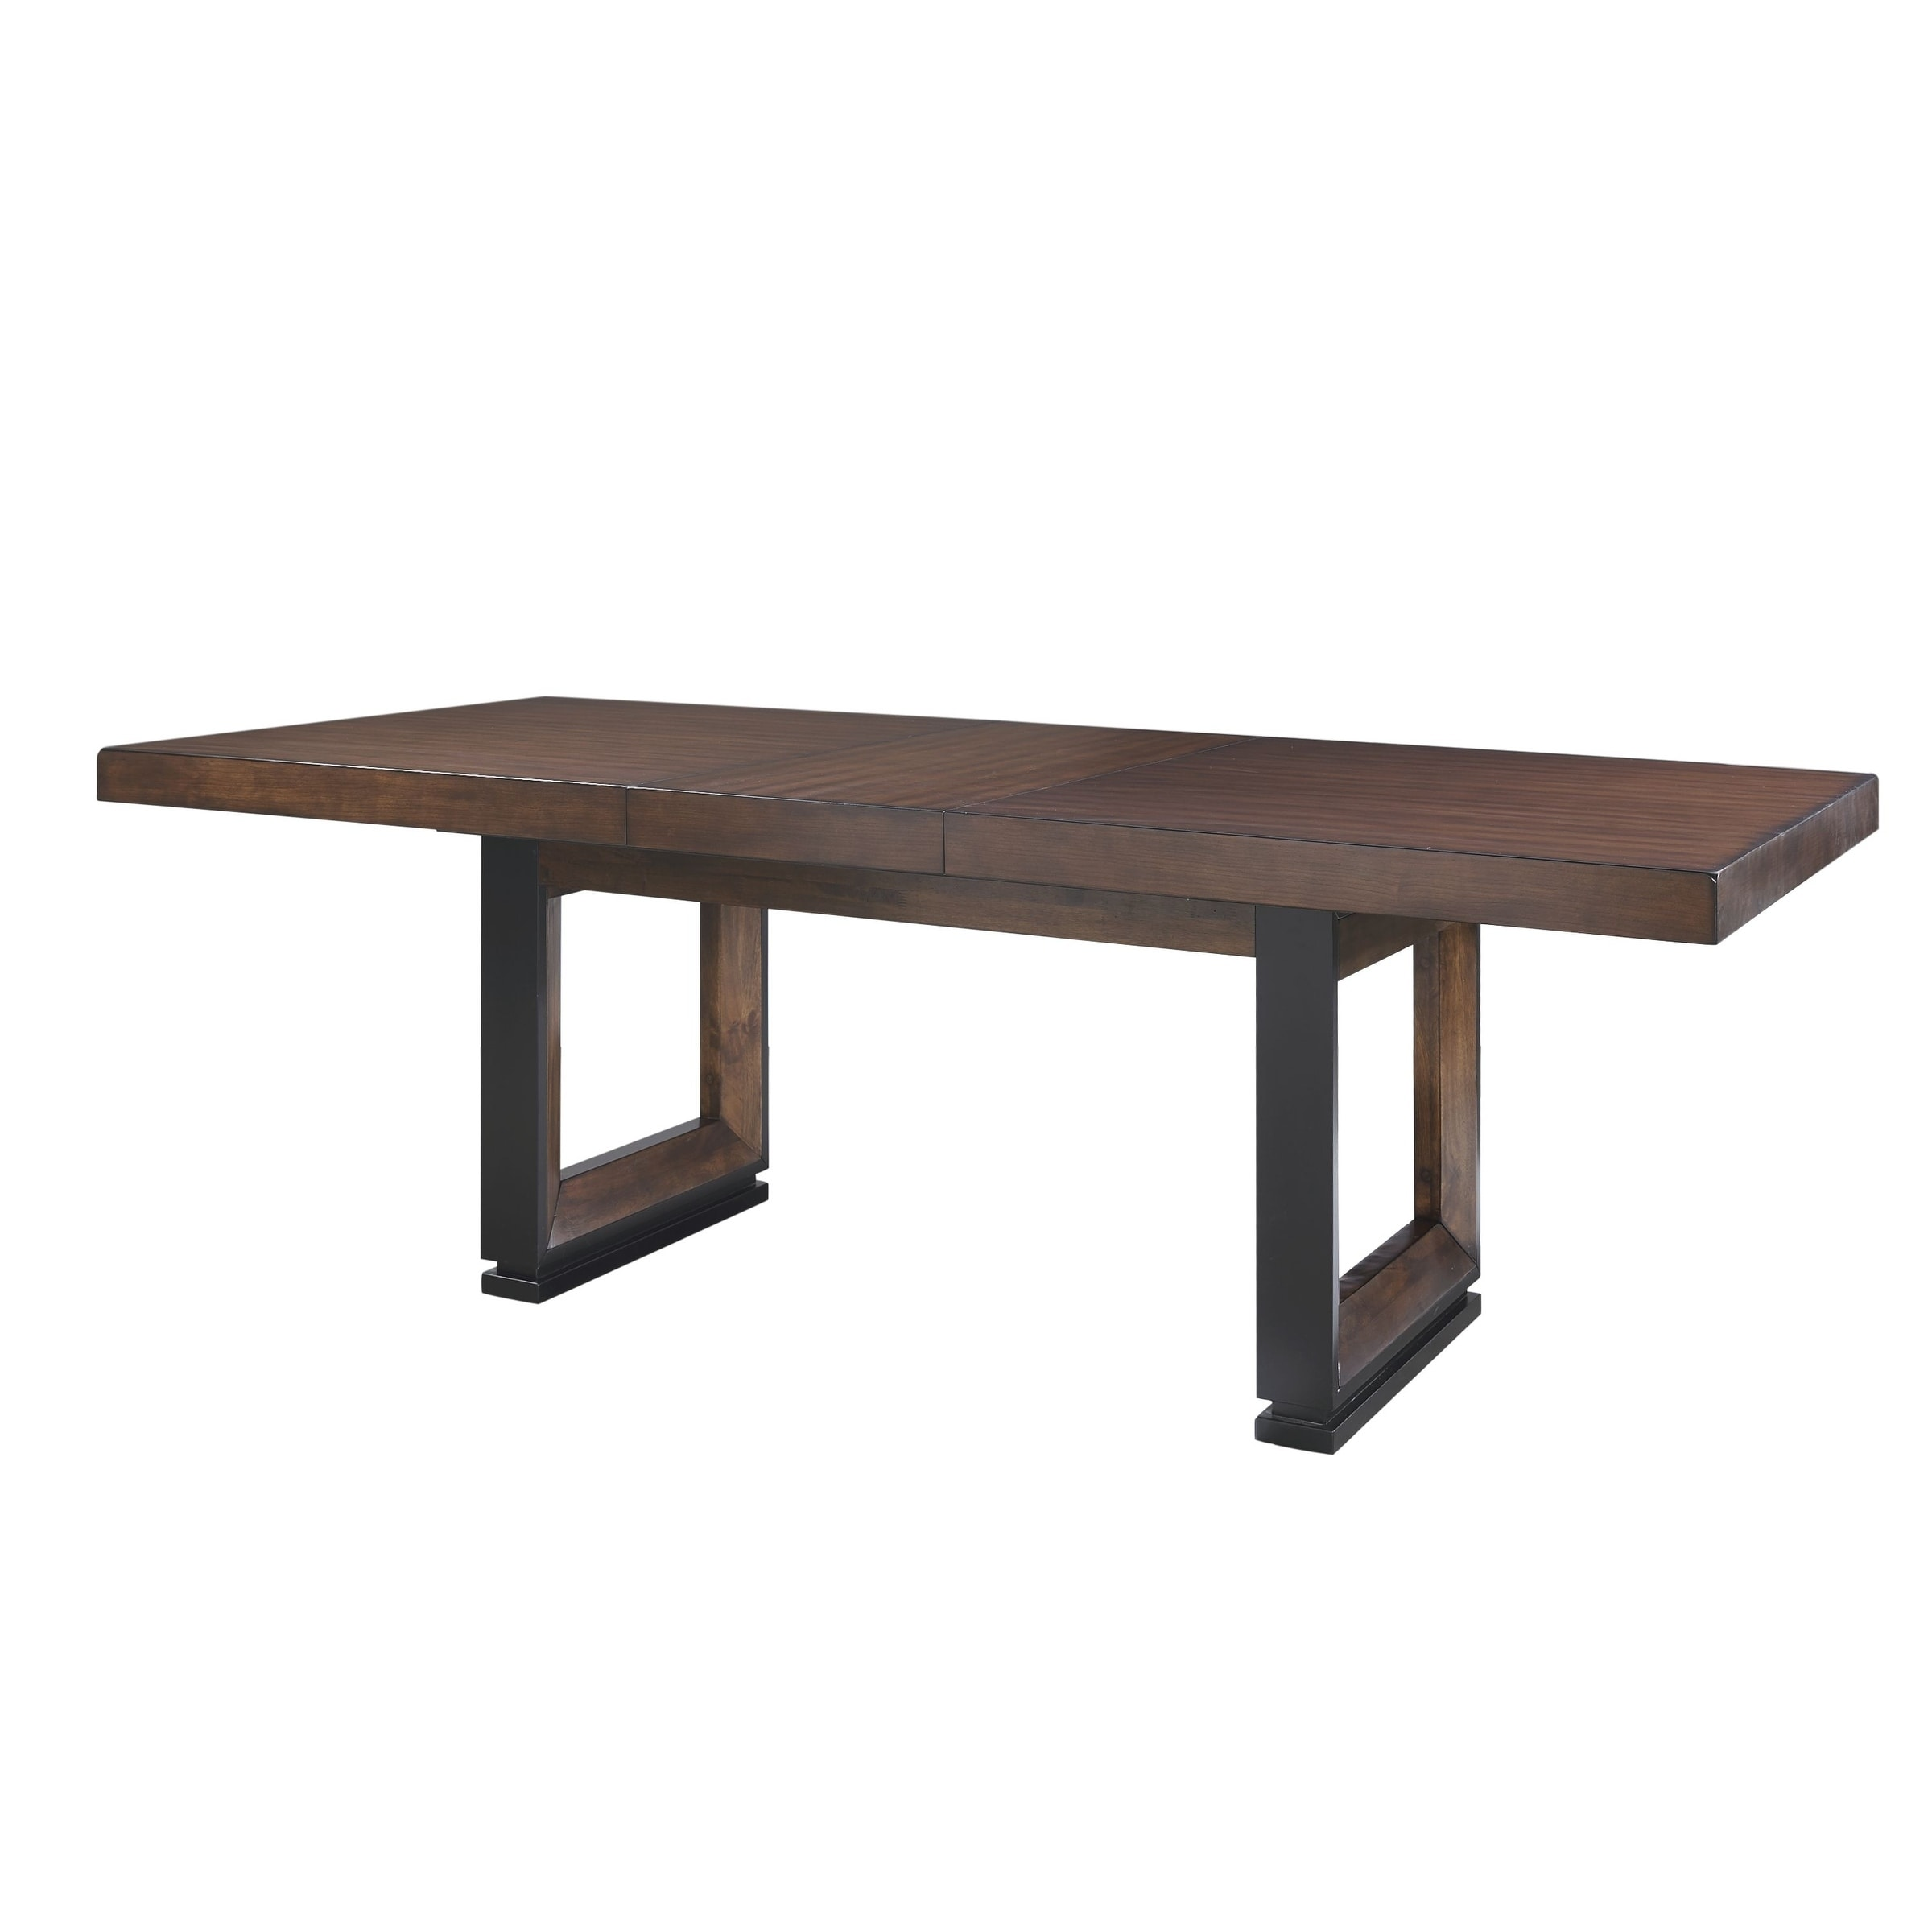 Carbon Loft Deaton Modern Natural Cherry Wood Rectangle 90 Inch Dining Table